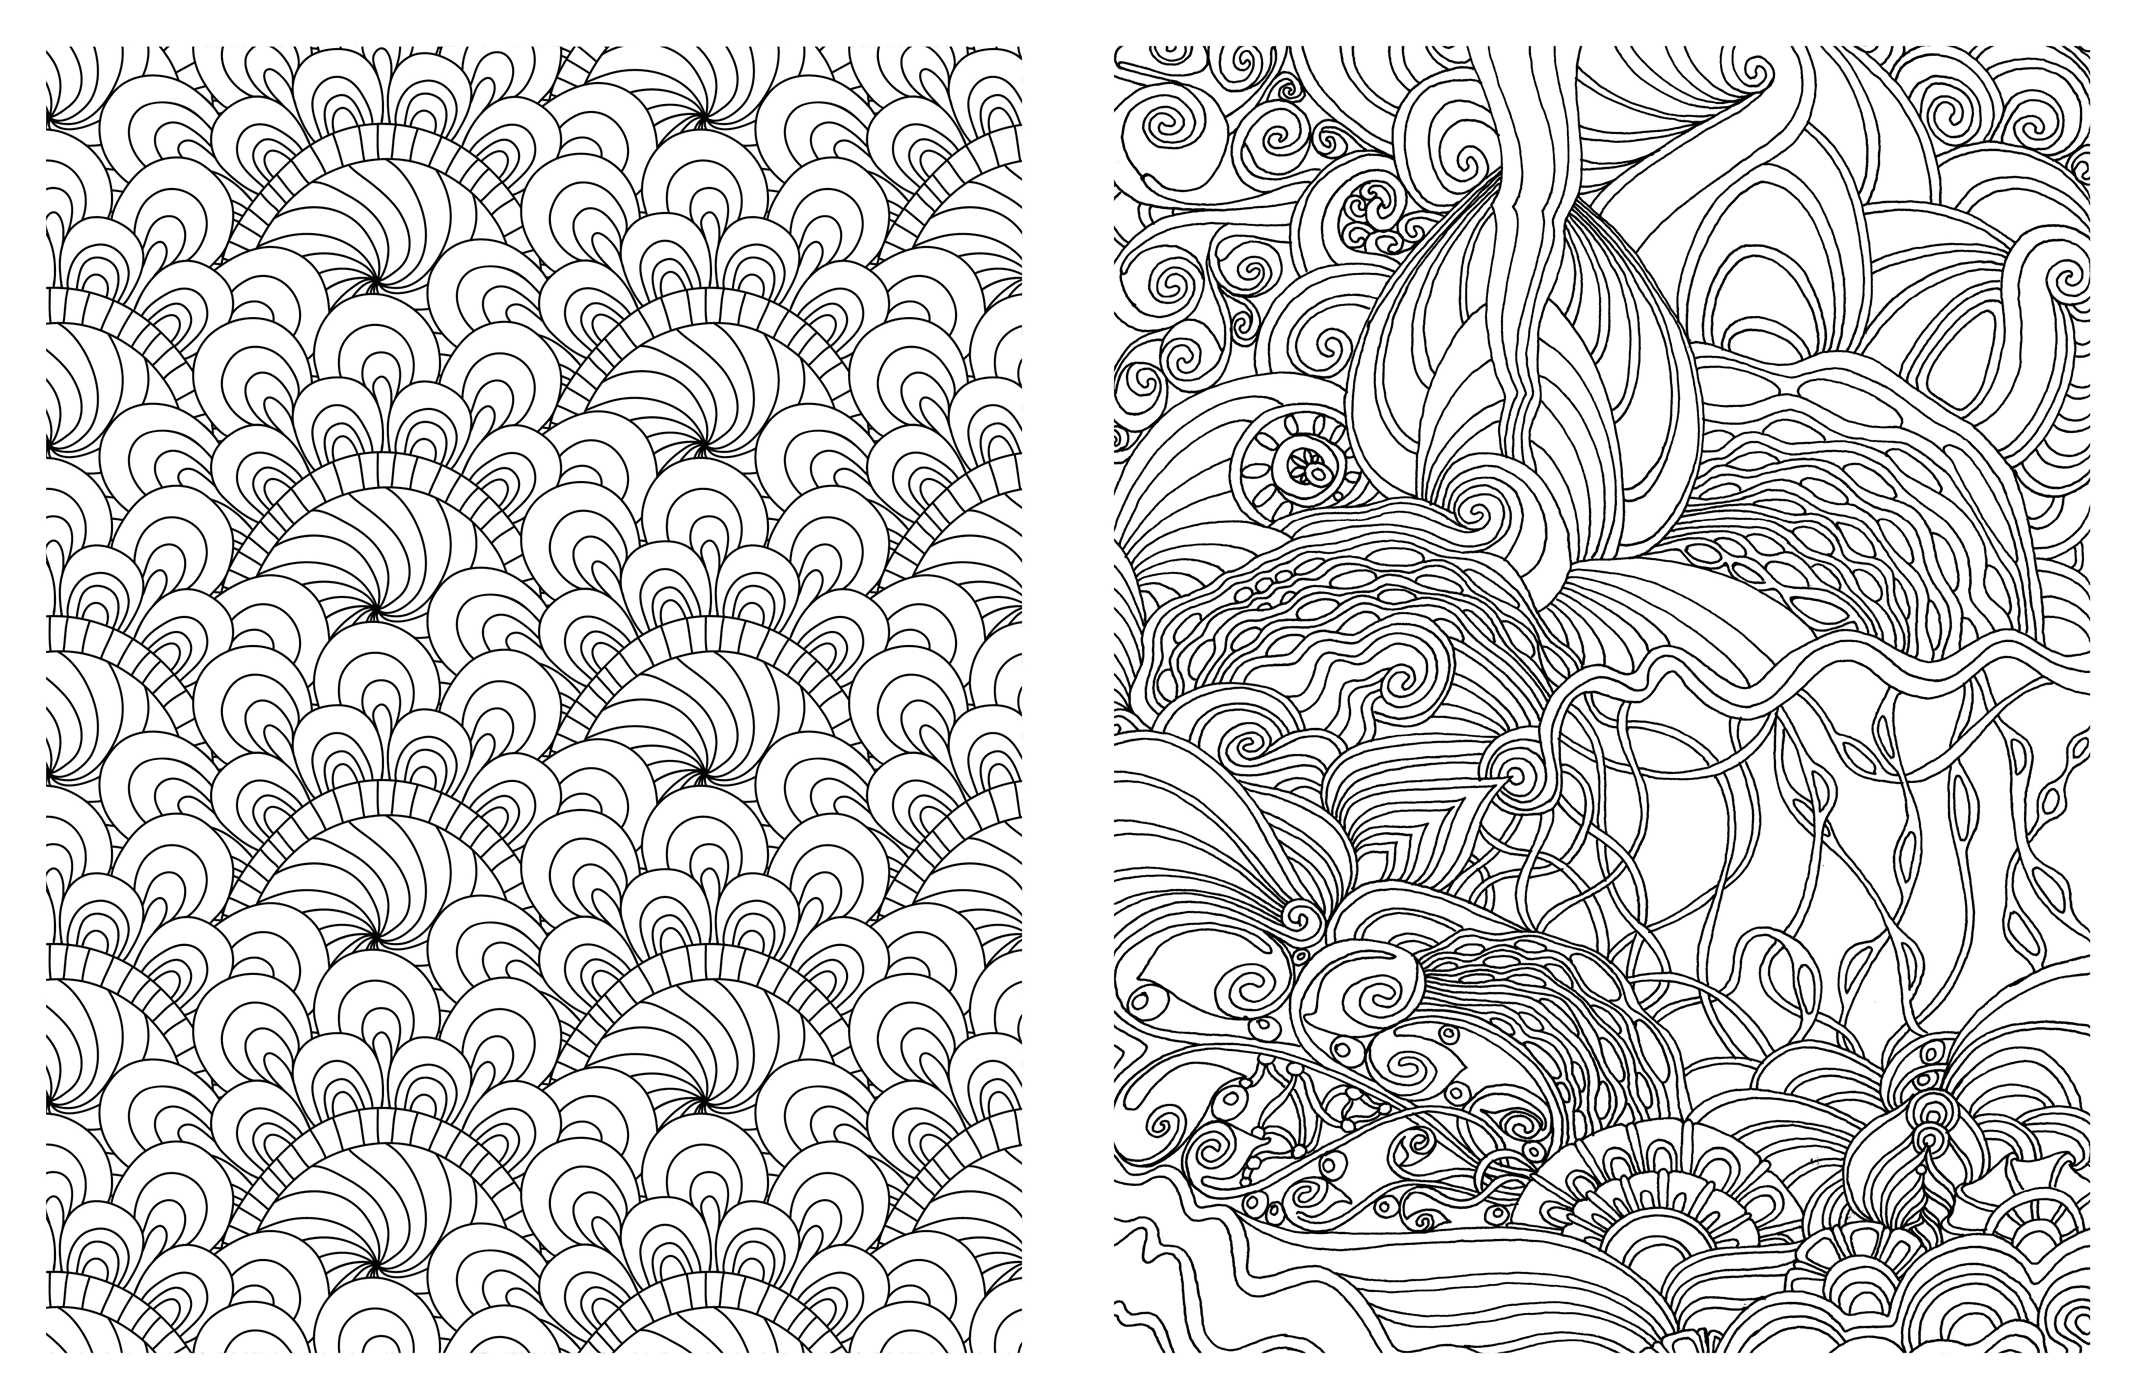 amazoncom posh adult coloring book soothing designs for fun relaxation posh coloring books 0050837348899 andrews mcmeel publishing books - Color Books For Adults